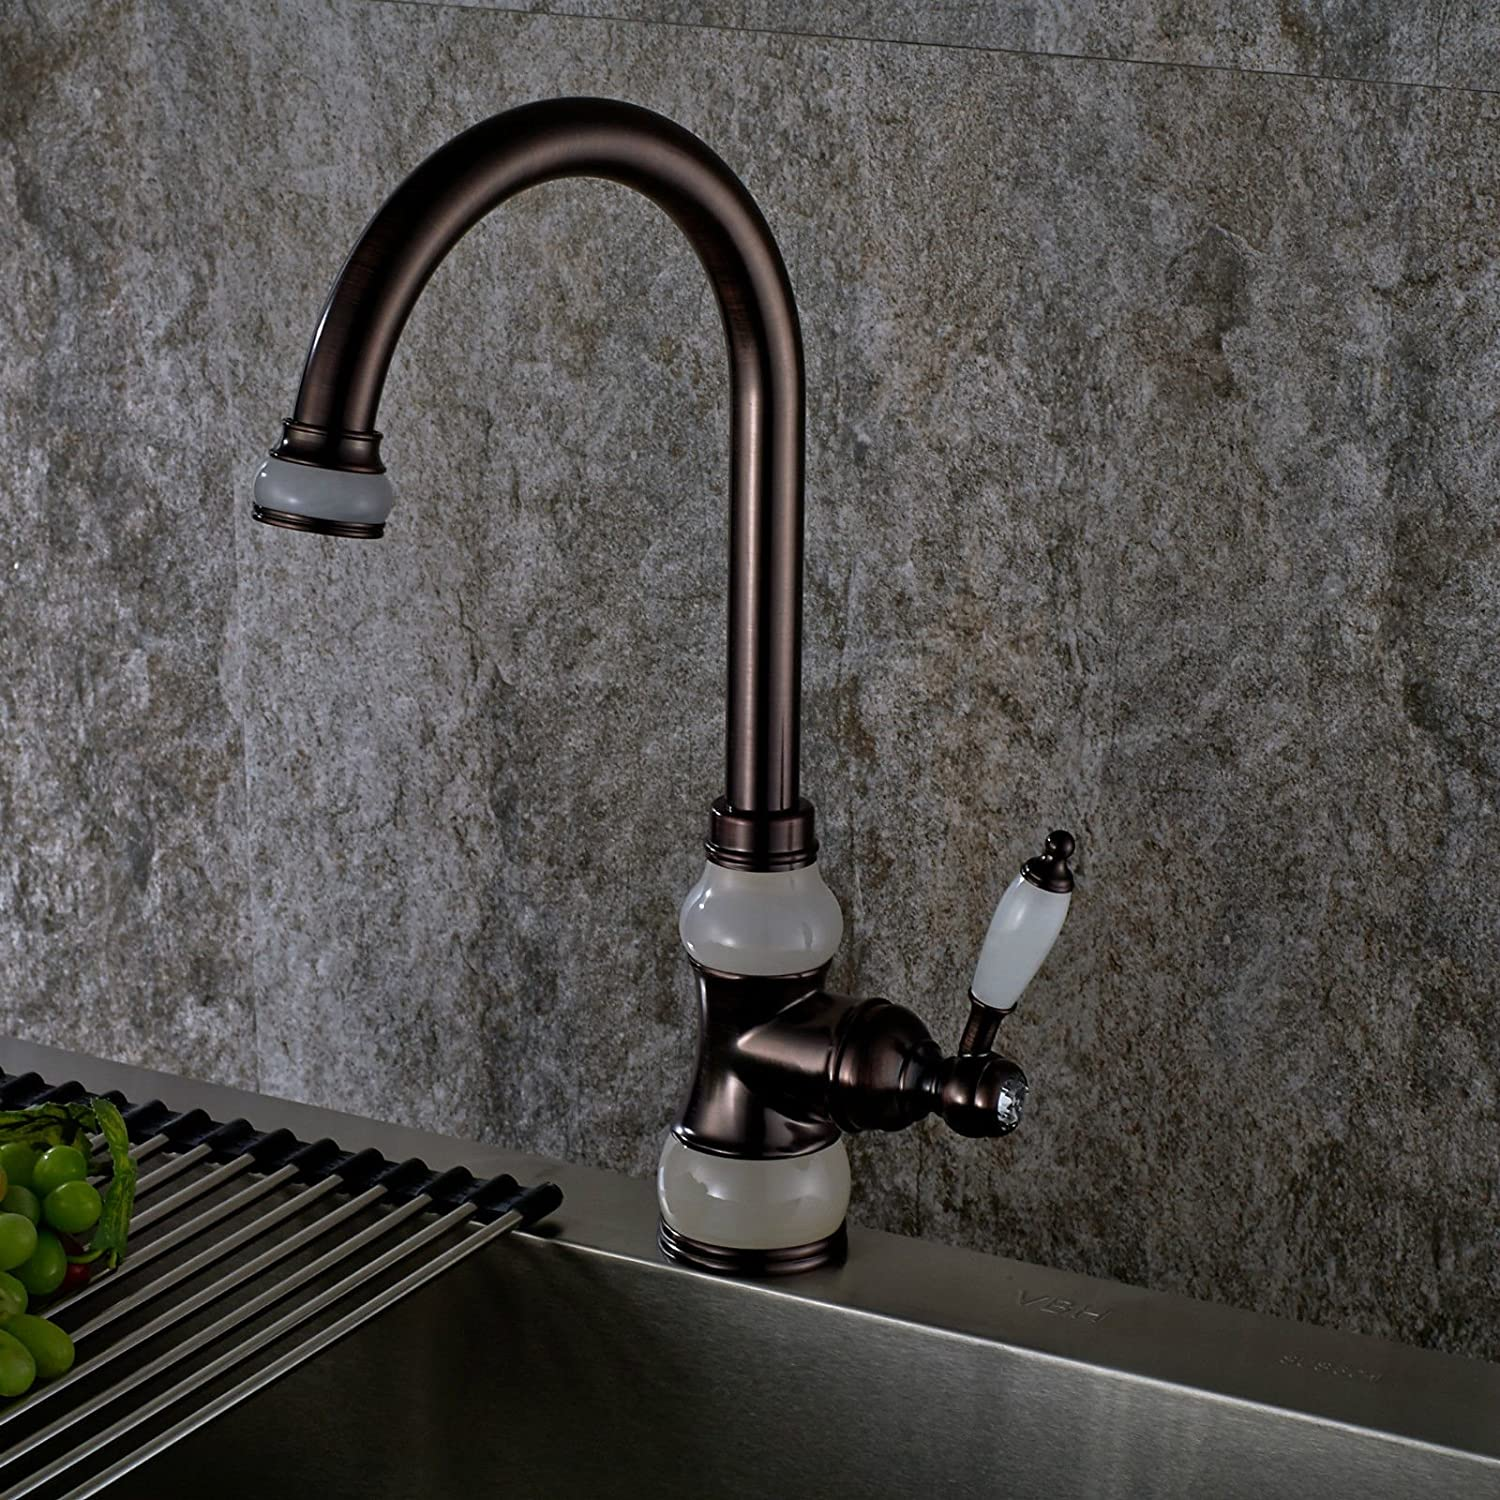 Amazon.com: Dayanand Kitchen Faucet Touchless High Pulldown Kitchen ...